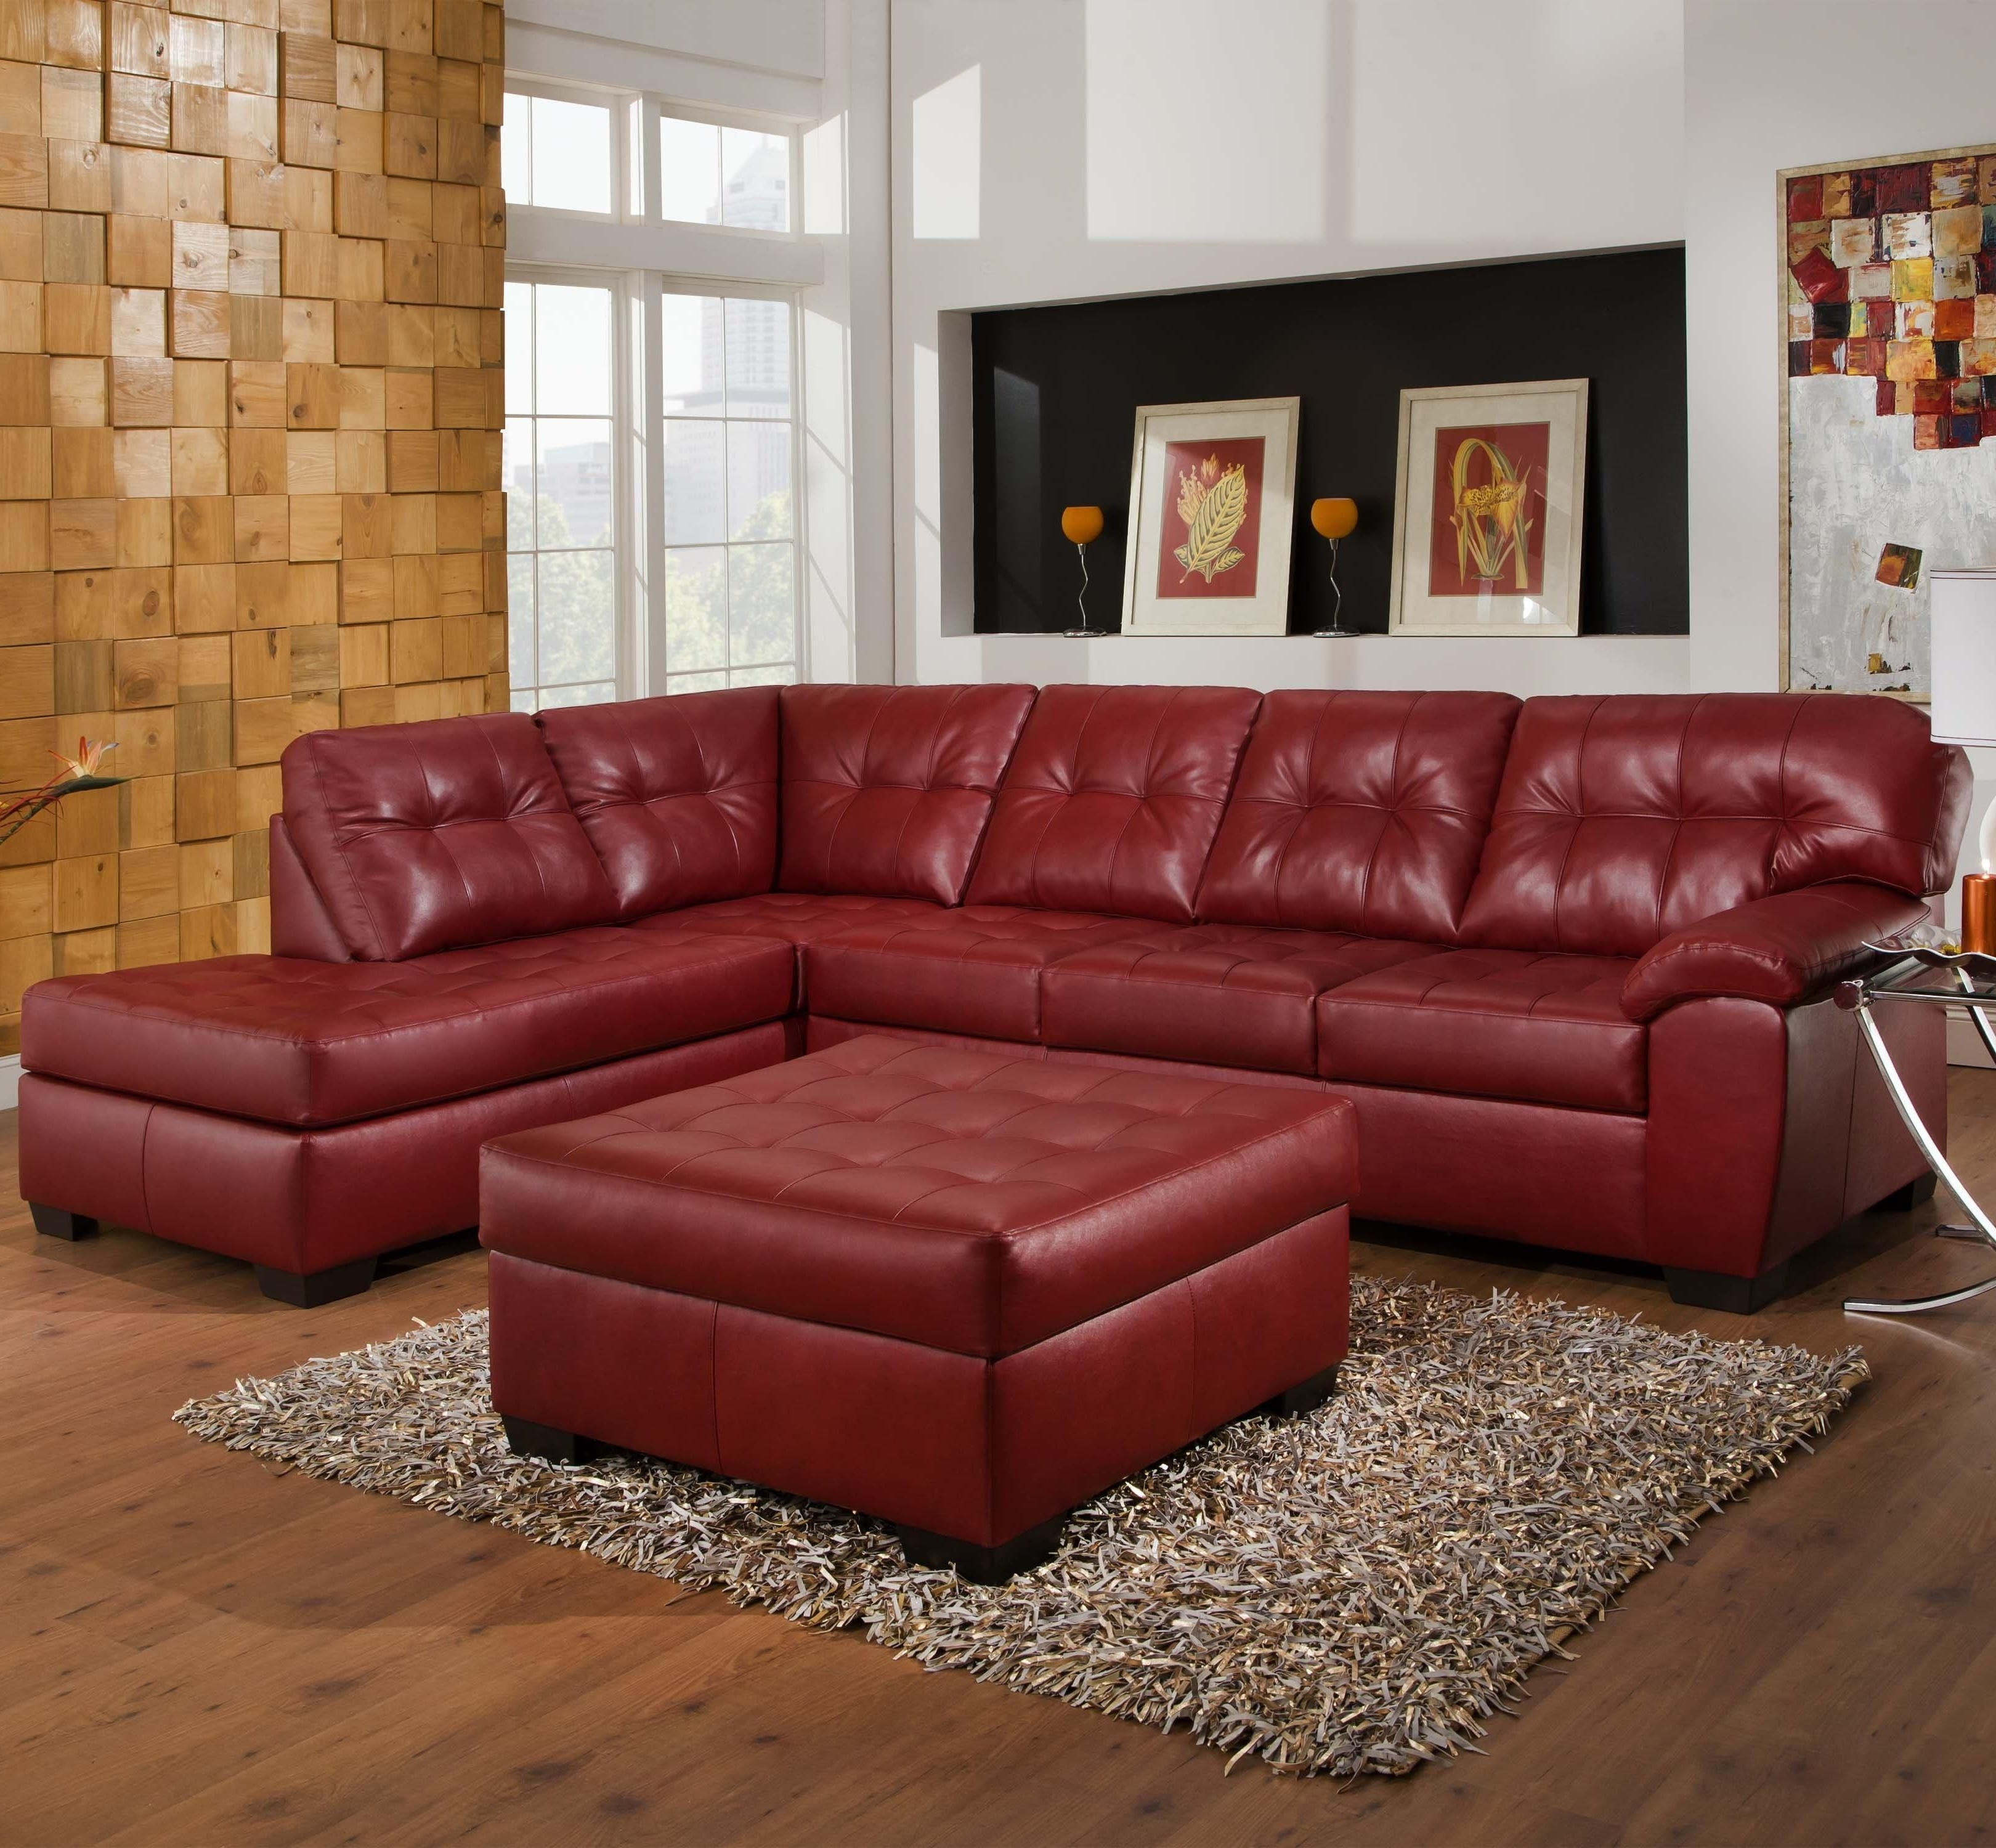 Ivan Smith Sectional Sofas Throughout Widely Used 9569 2 Piece Sectional With Tufted Seats & Backsimmons (Gallery 5 of 20)